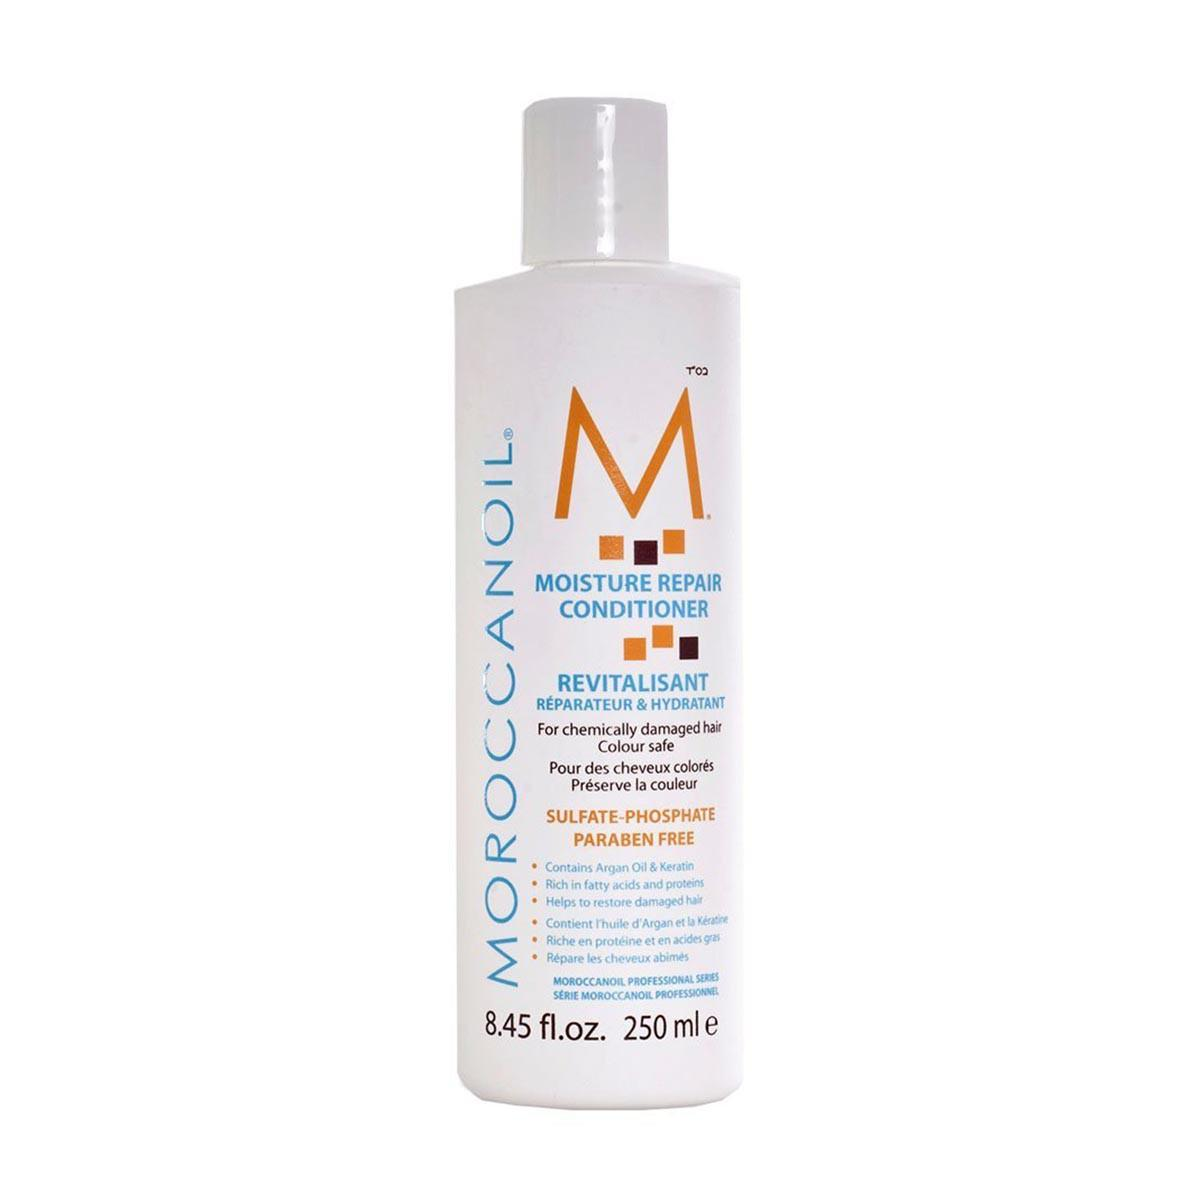 Moroccanoil fragrances Moisture Repair Conditioner 1000ml